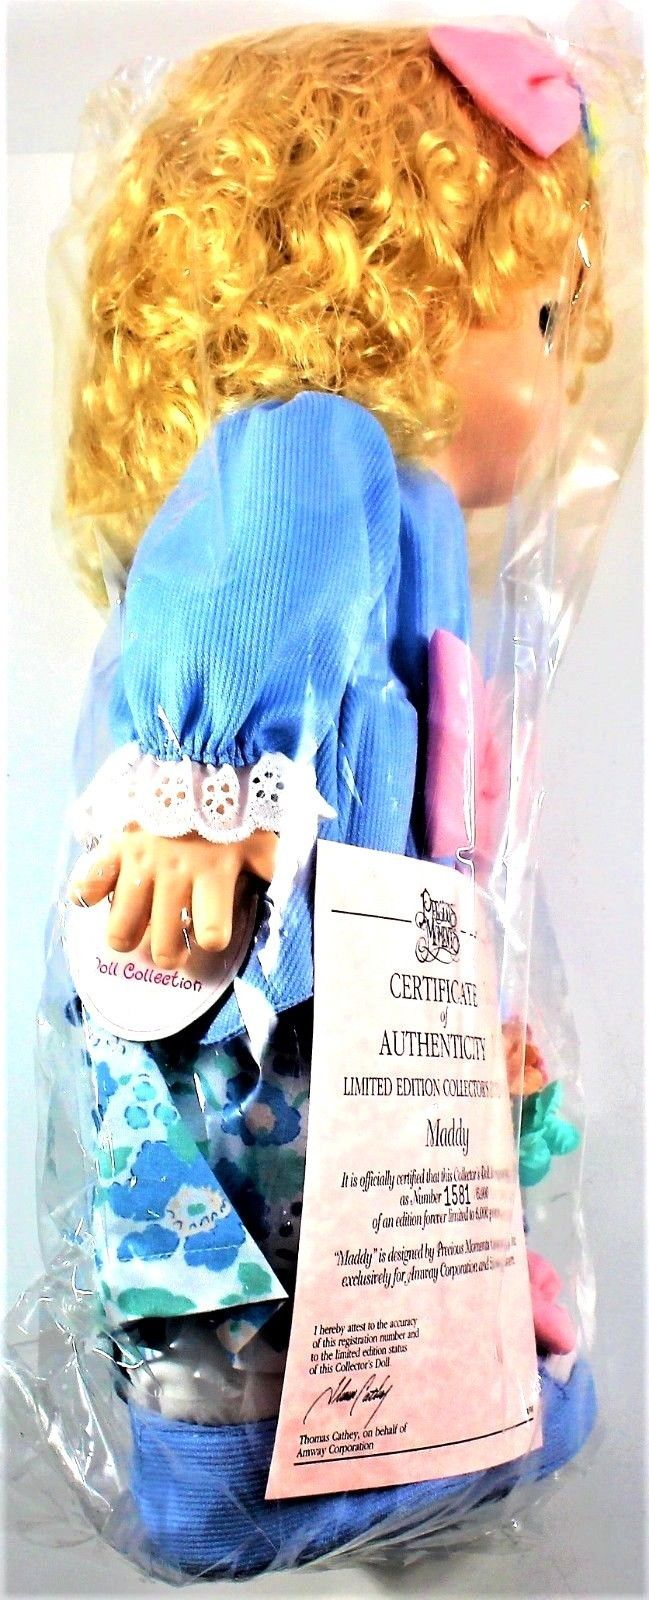 Precious Moments Doll Maddy 16 in. Amway Exclusive with Certificate Item#1581